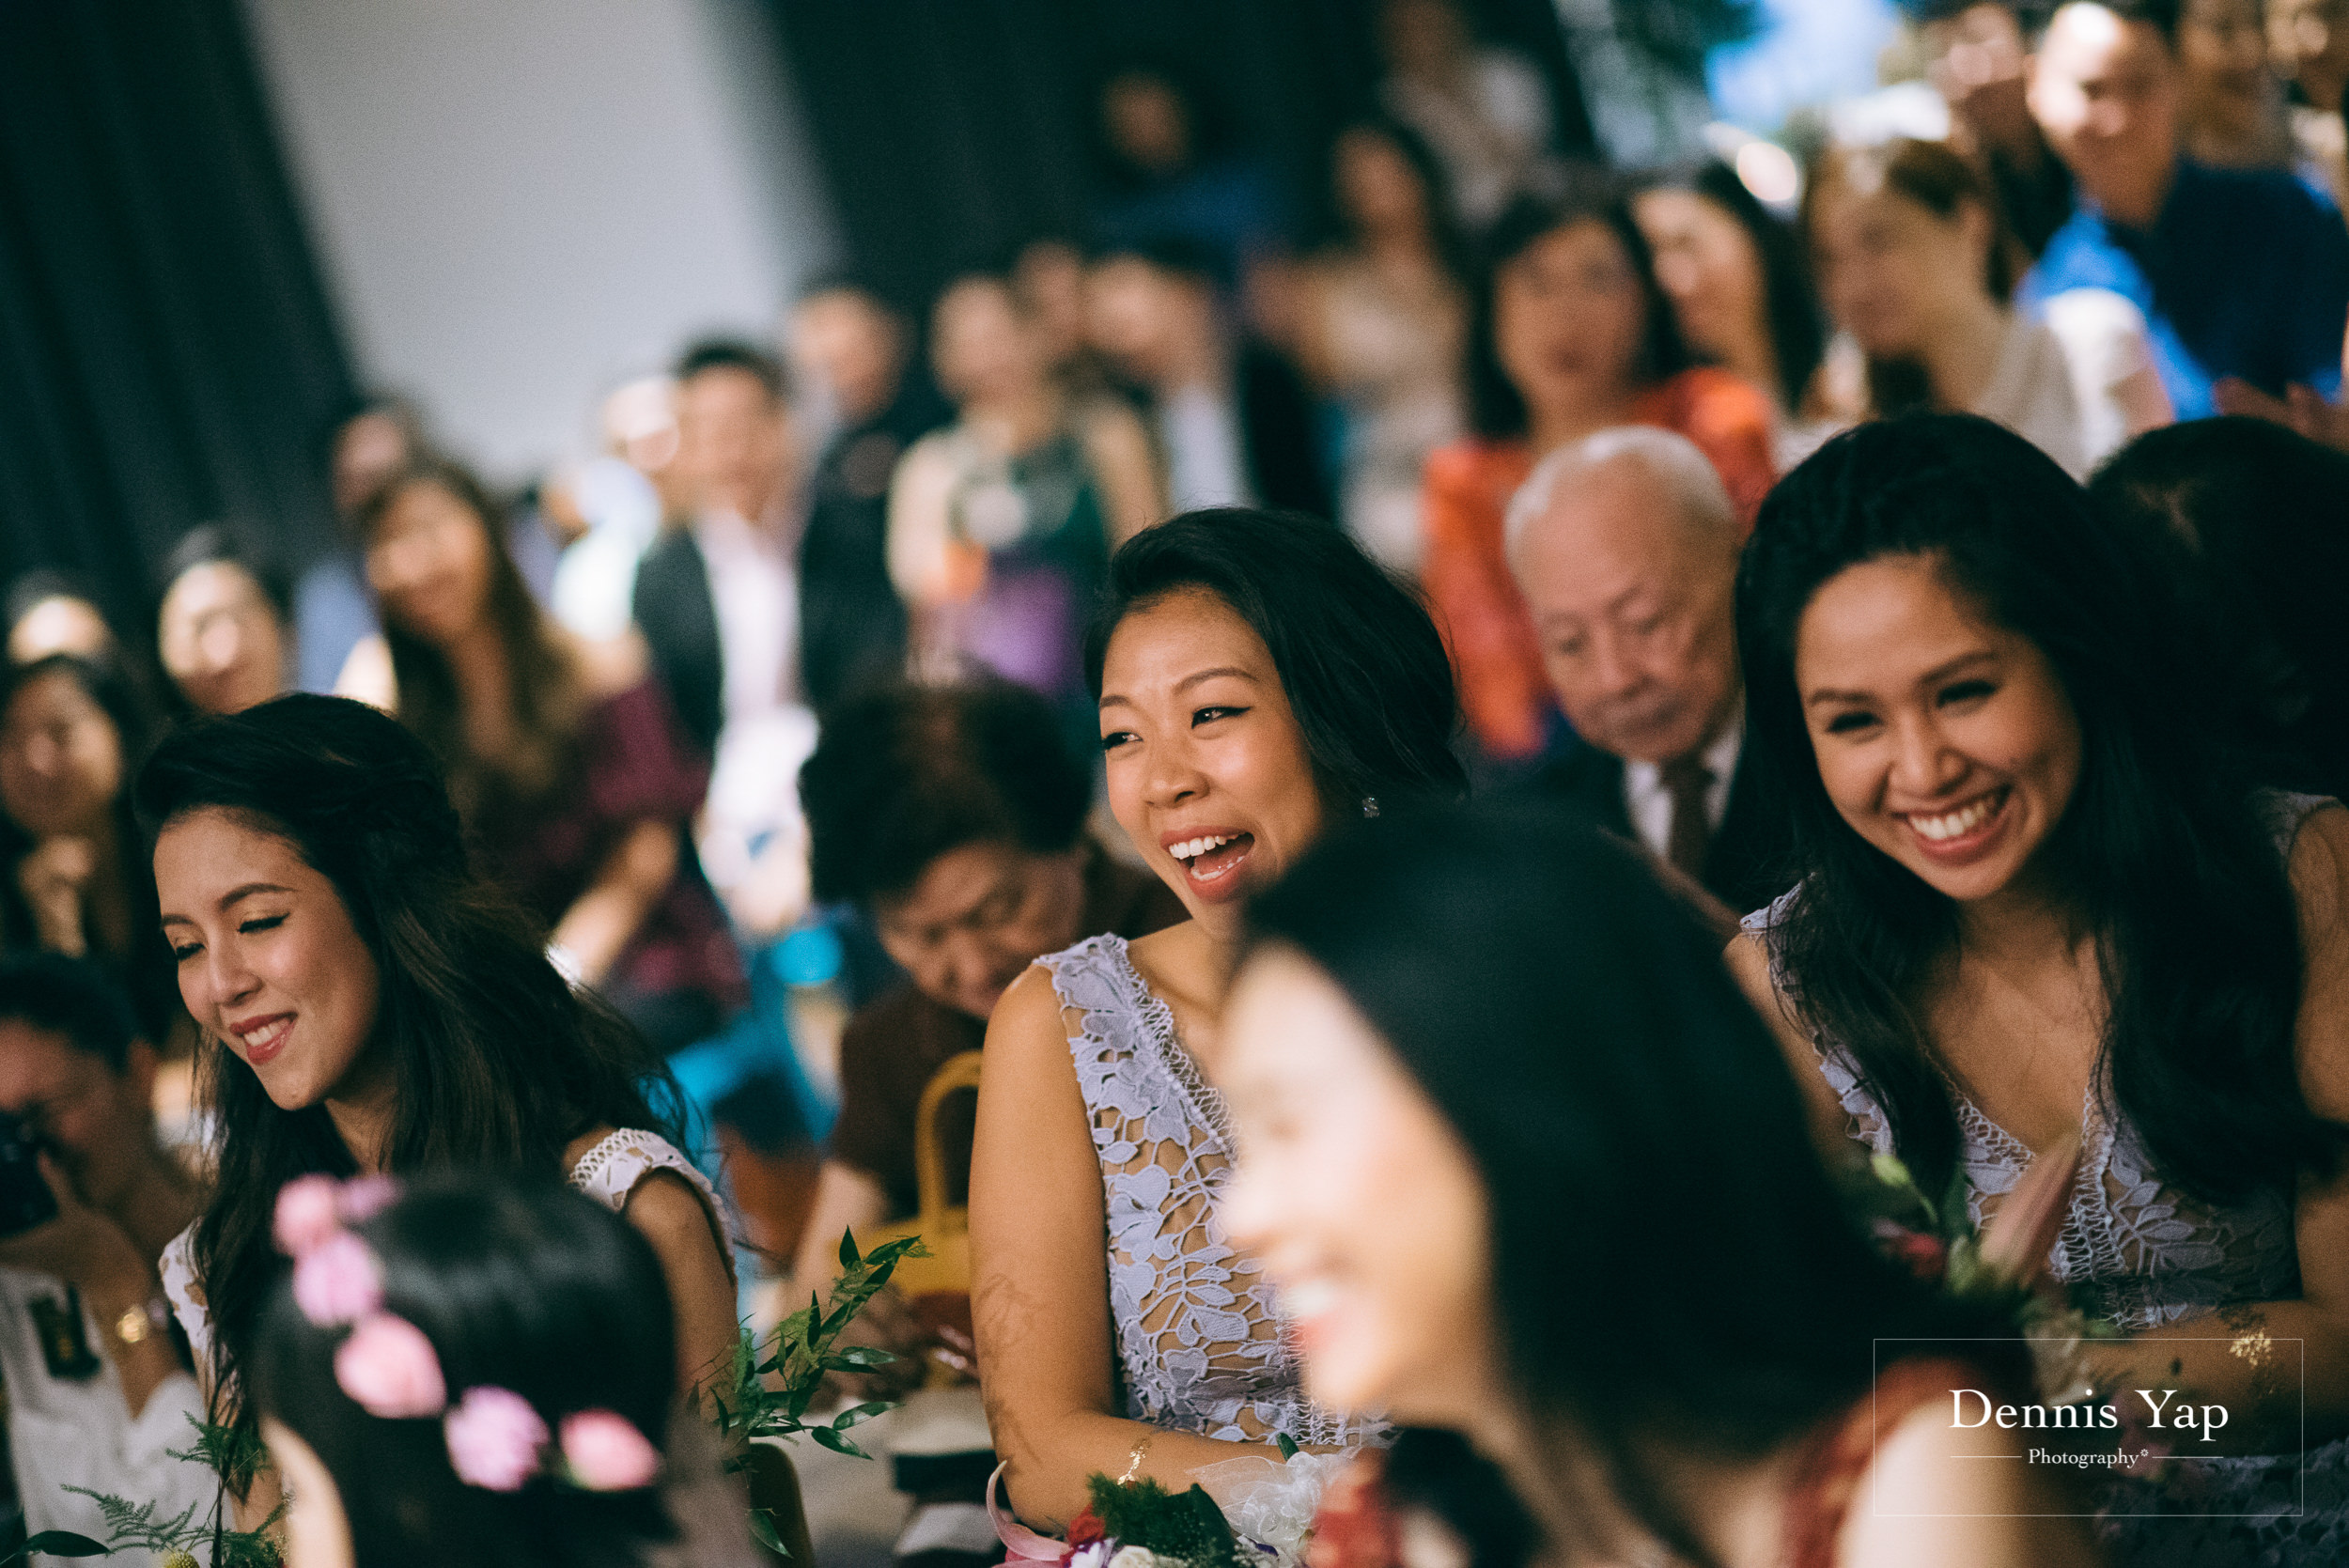 ser siang sze liang rom registration of marriage KL journal hotel dennis yap photography-18.jpg